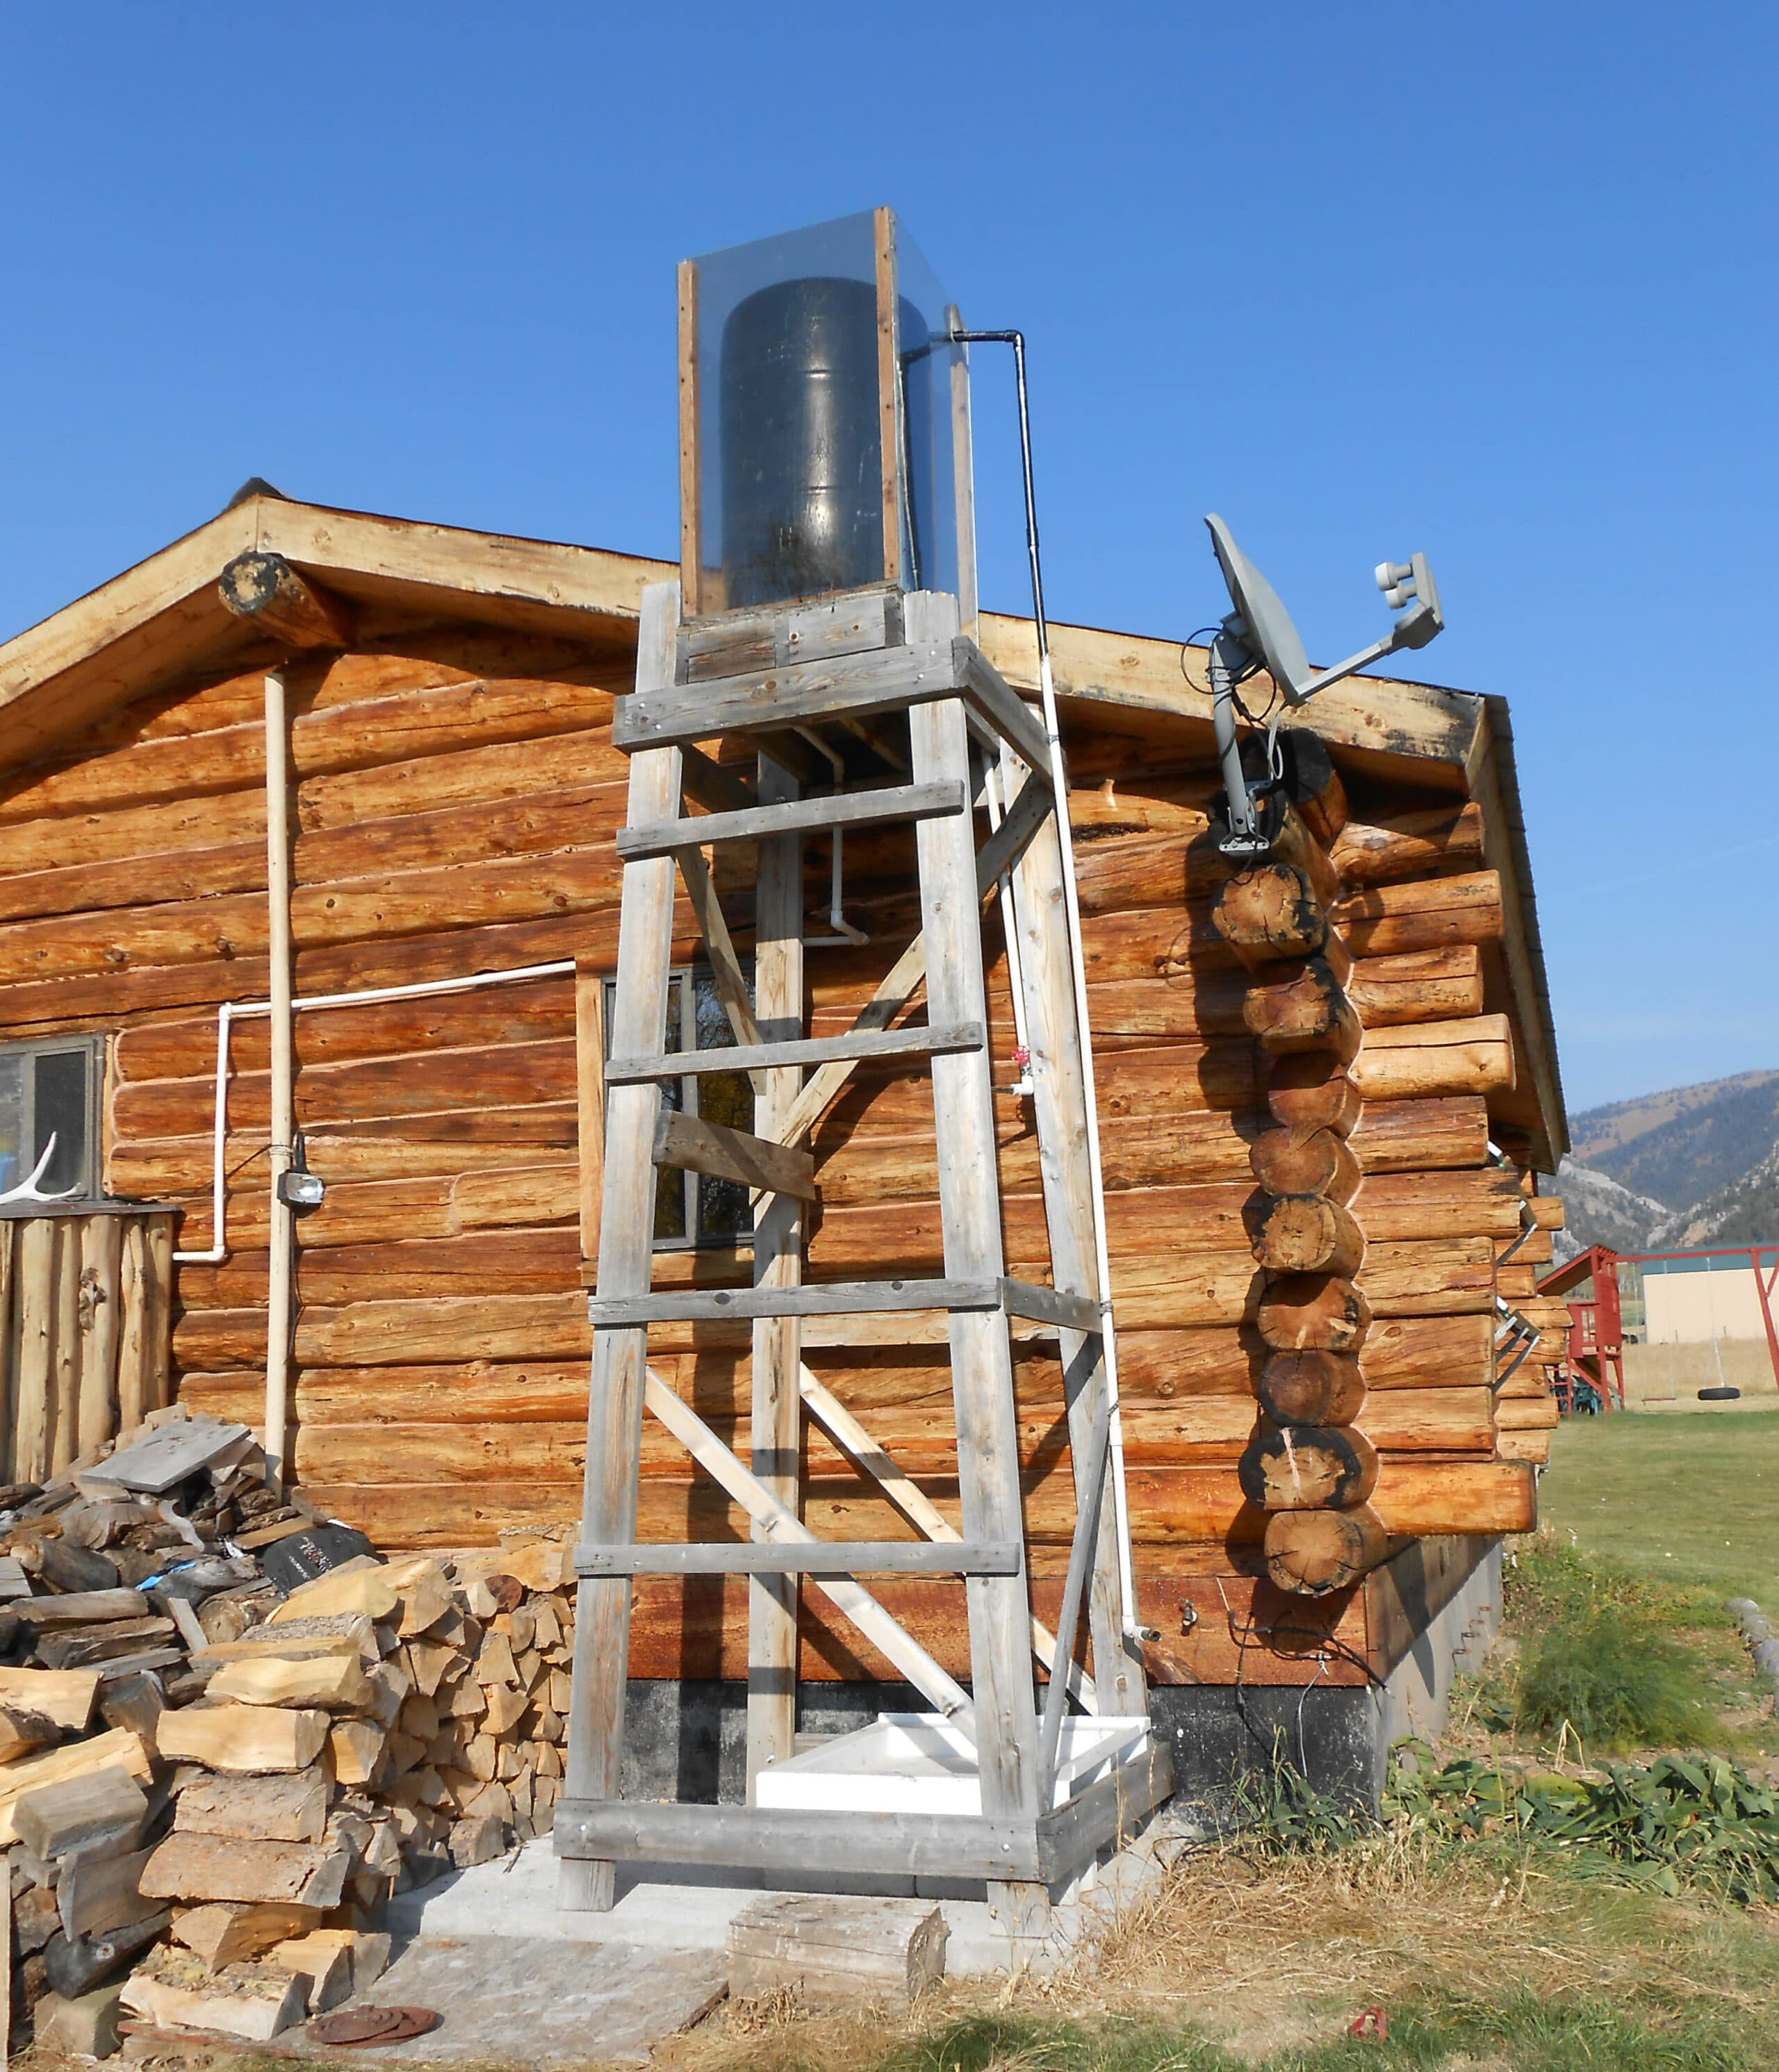 A Friend Of Mine Built An Outdoor Shower While Back You Can See It In The Attached Picture